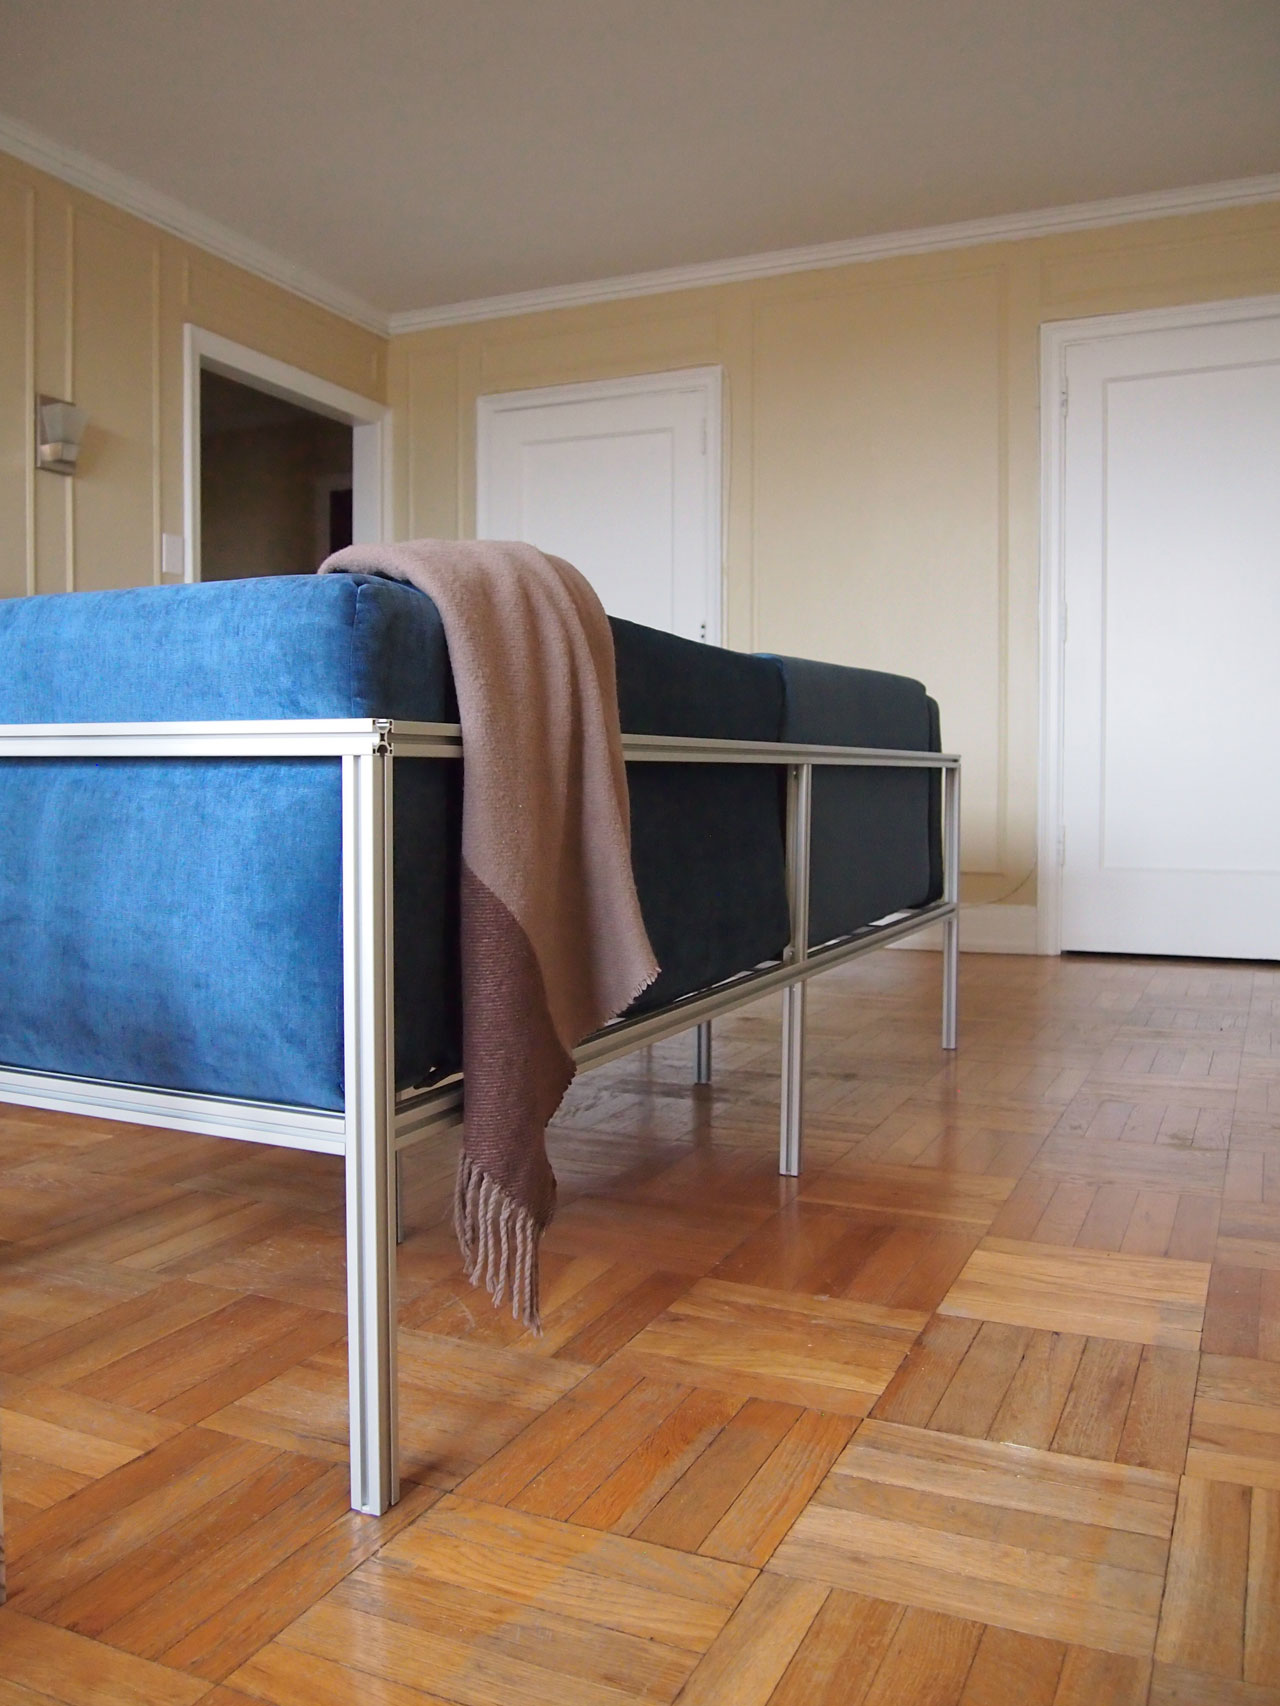 DIY velvet sofa couch designed by Aandersson